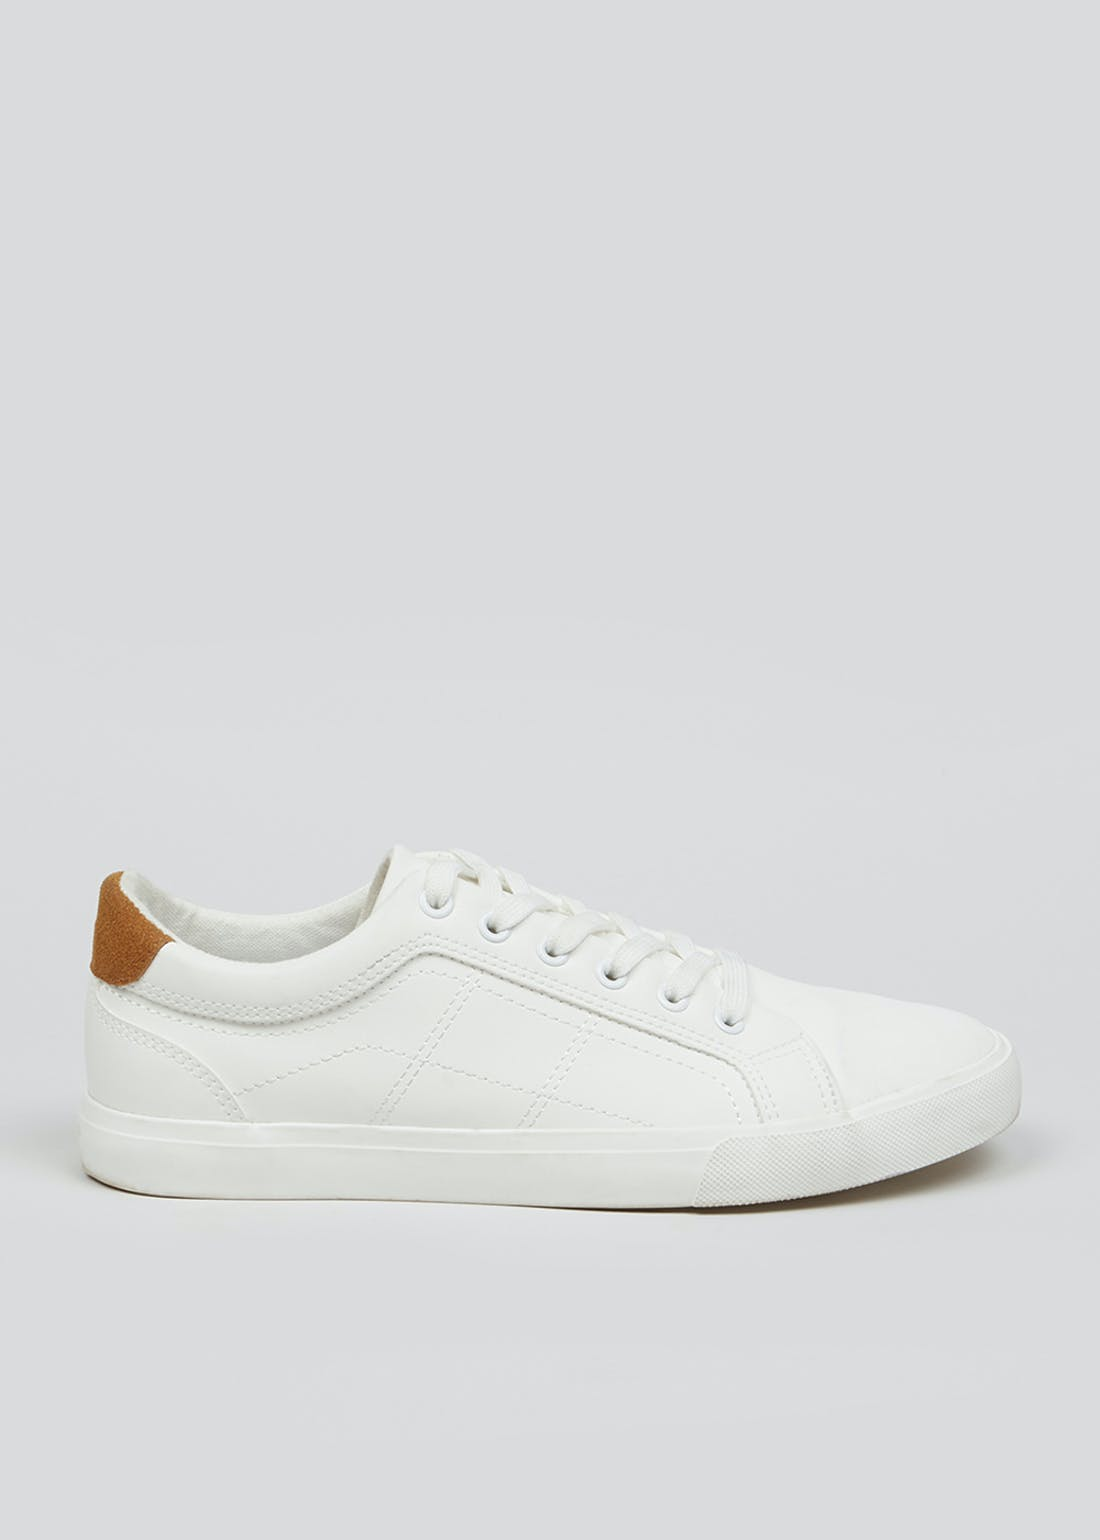 White Lace Up Fashion Trainers